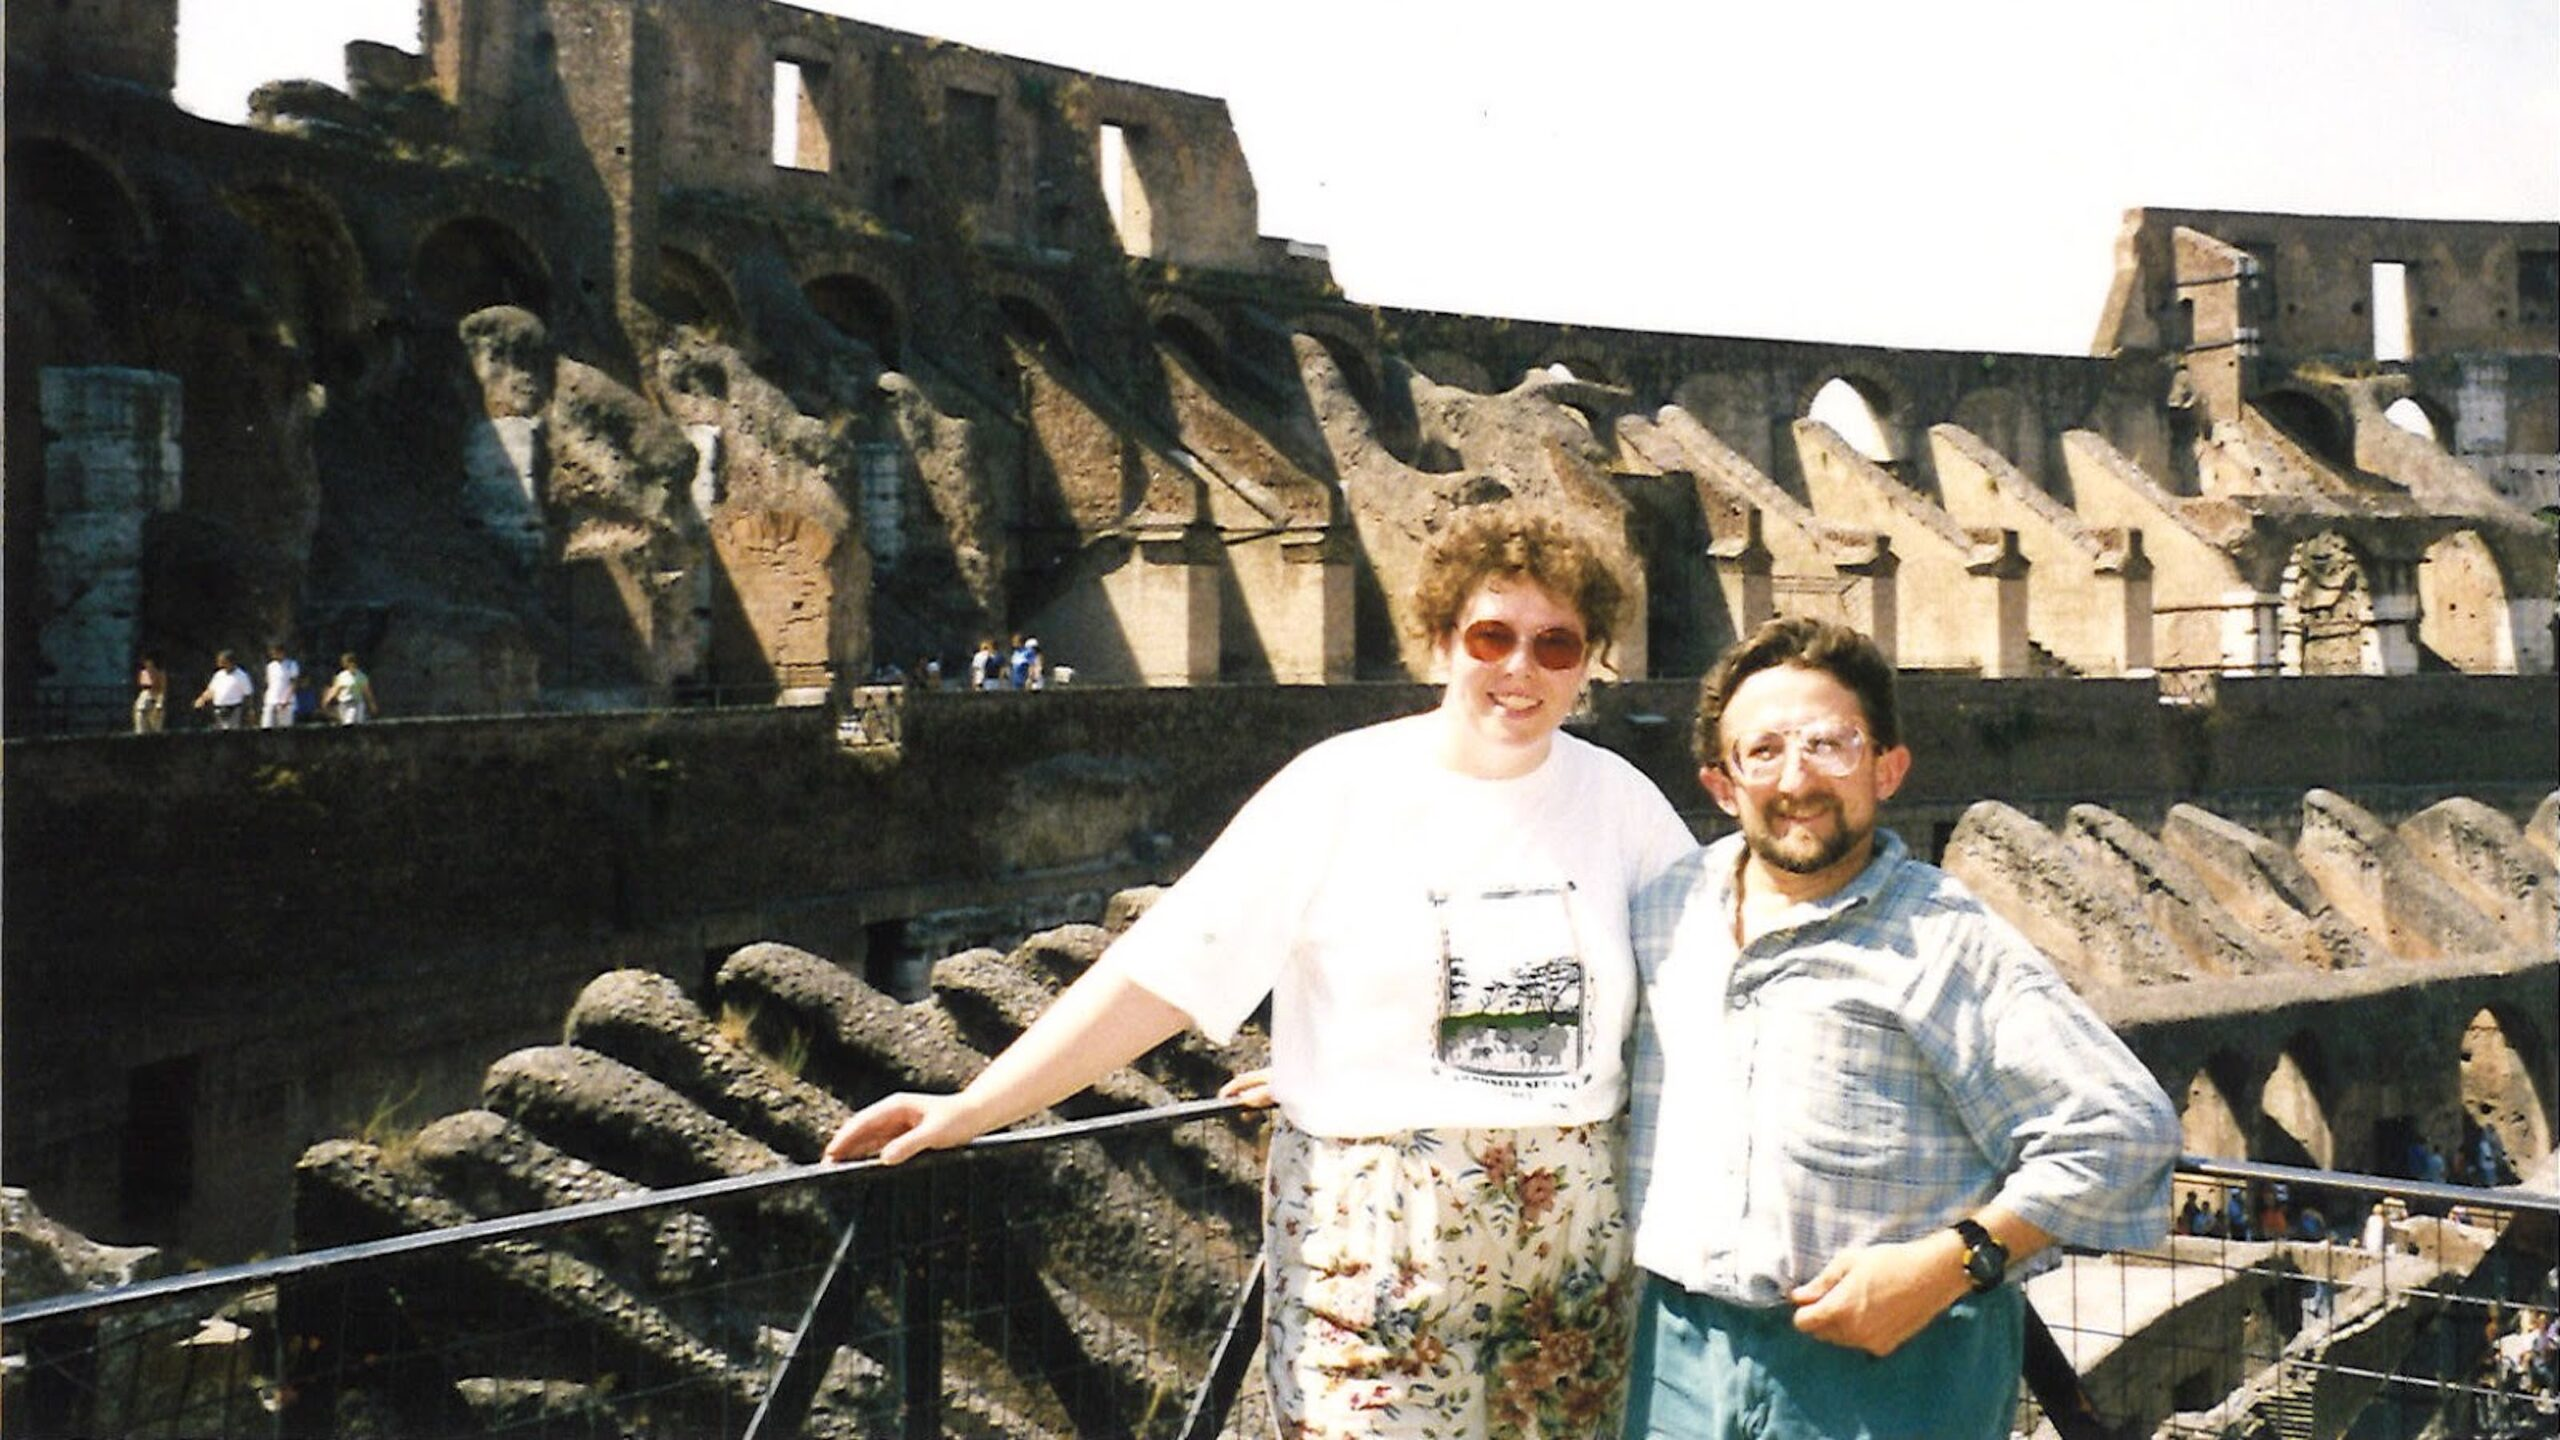 Joe and Sarah Nucci at the Colosseum in Rome, Italy